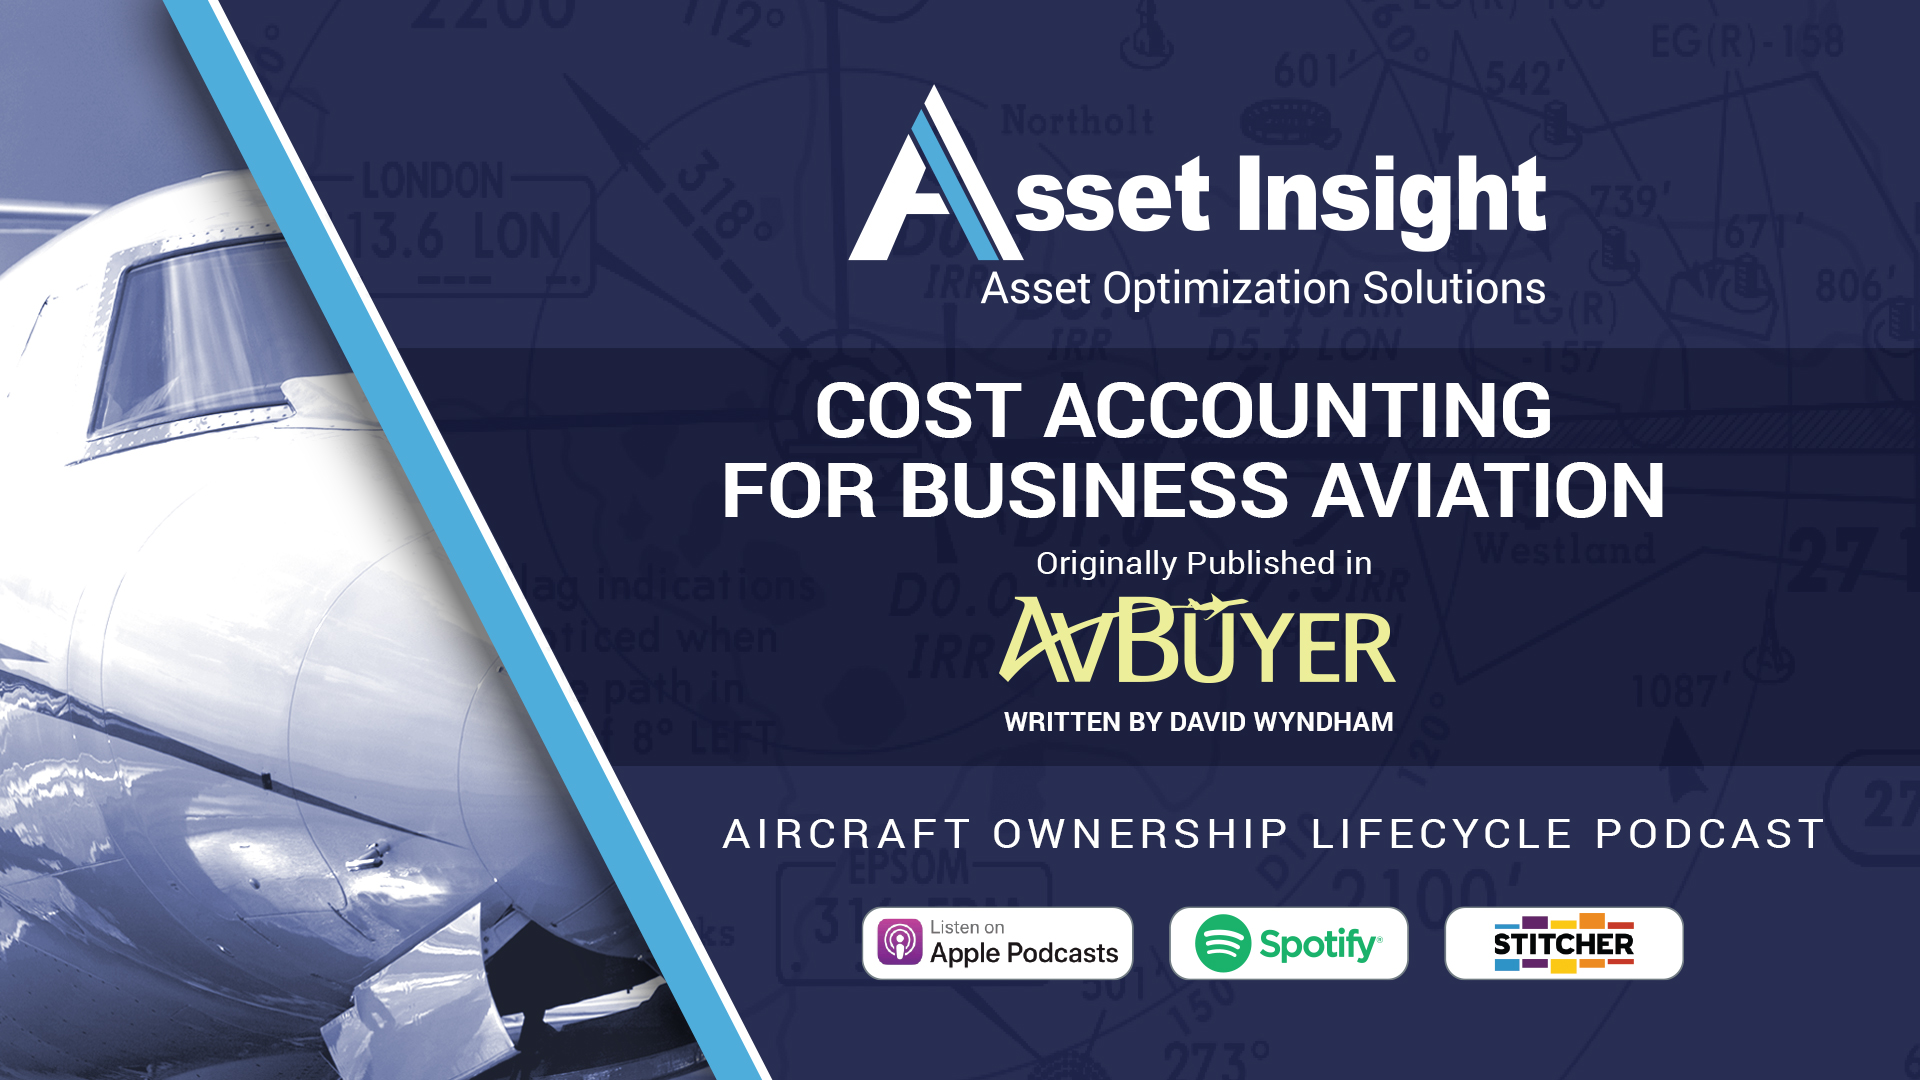 Cost Accounting for Business Aviation David Wyndham